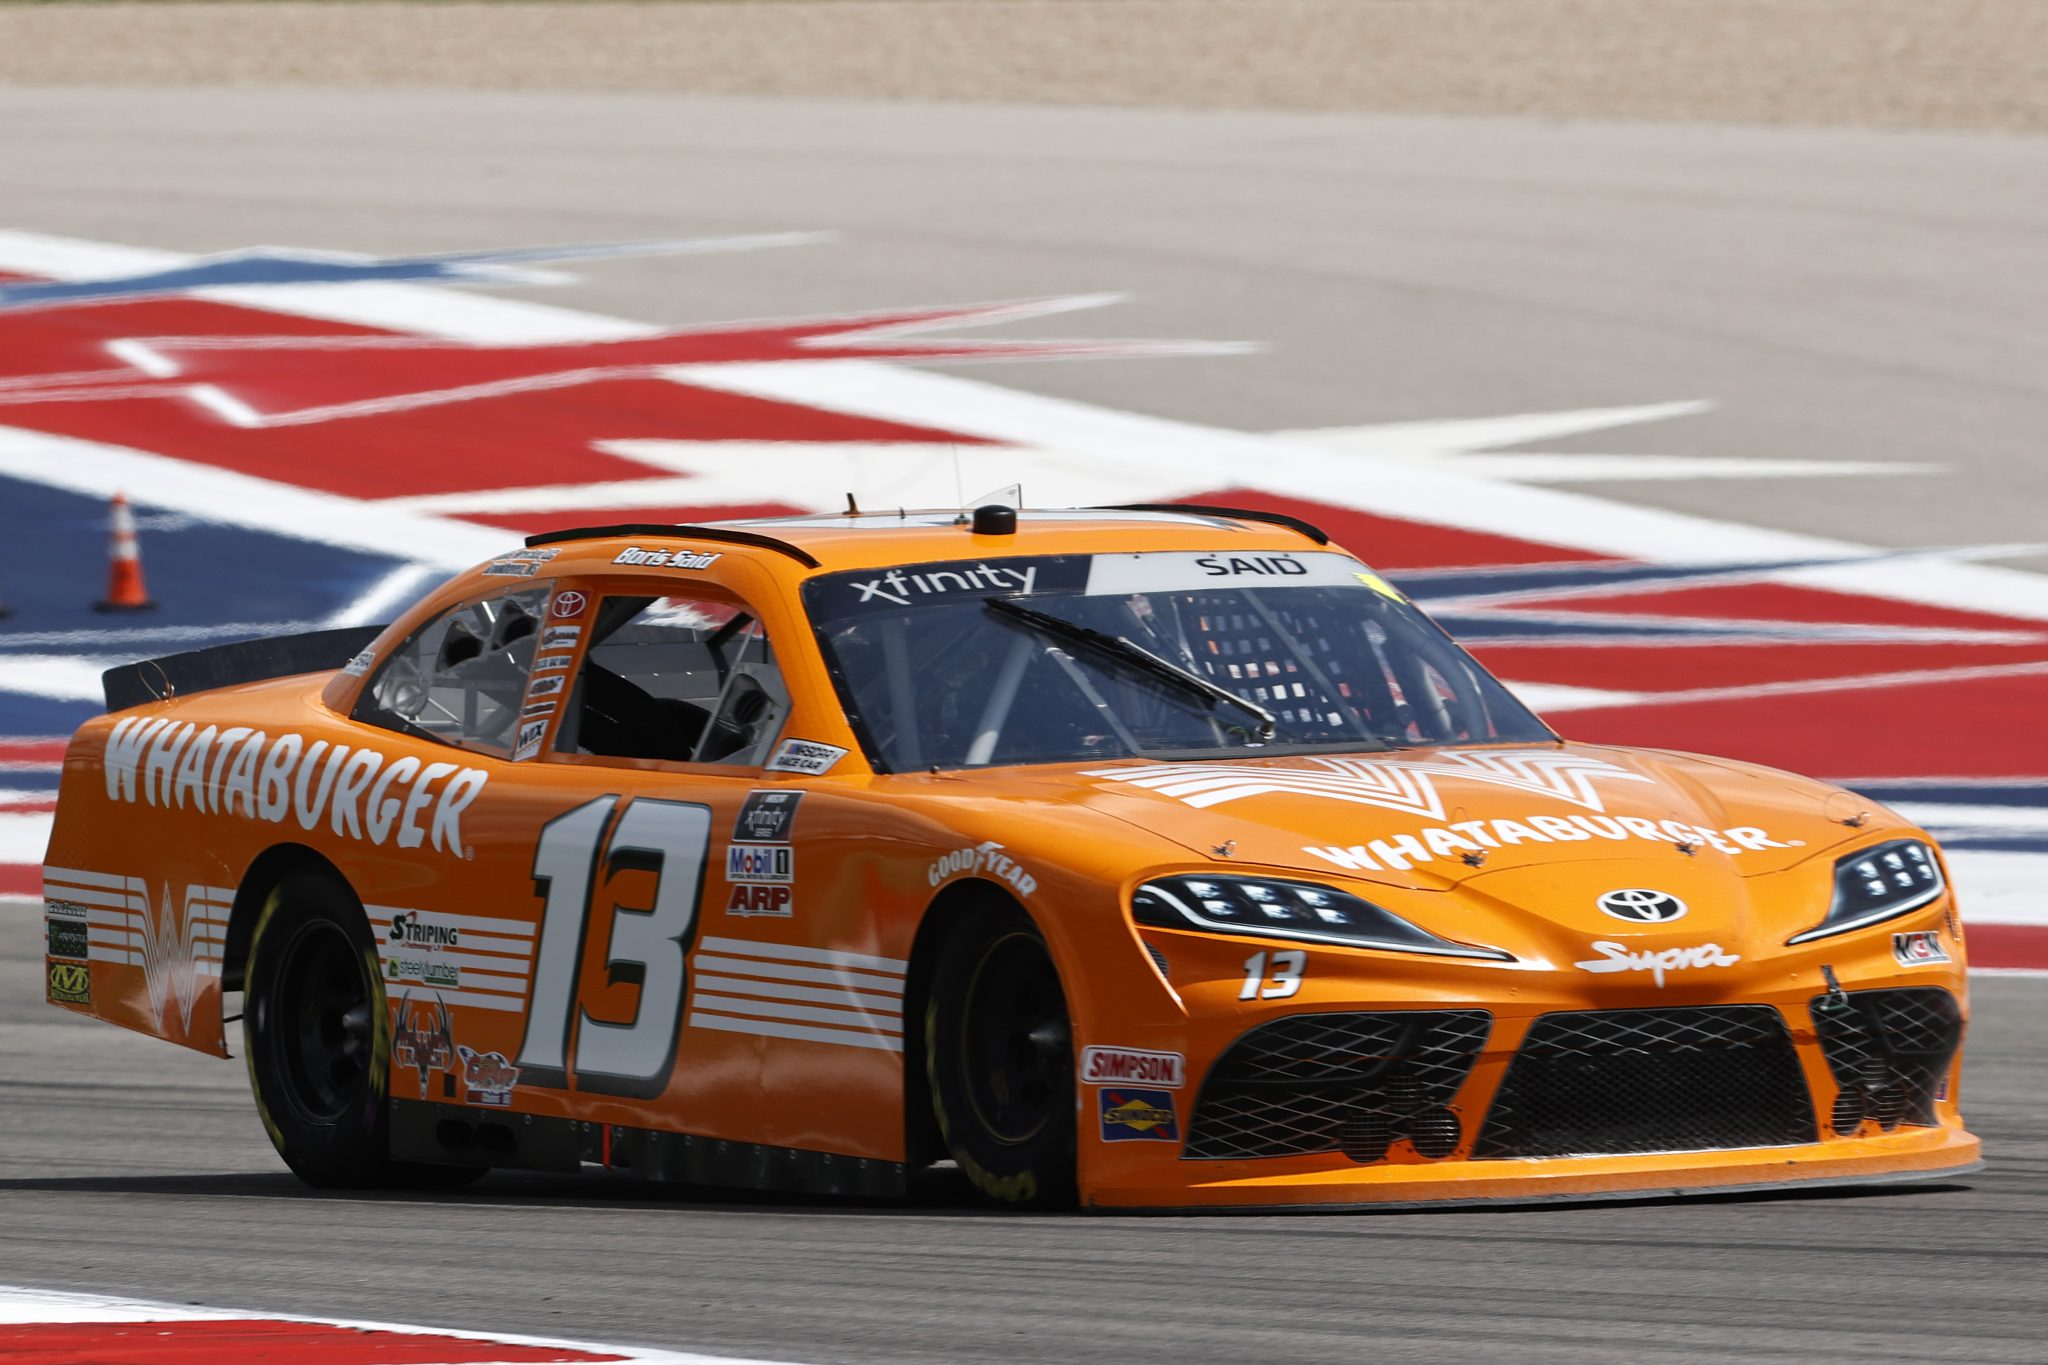 AUSTIN, TEXAS - MAY 21: Boris Said, driver of the #13 Whataburger Toyota, drives during practice for the NASCAR Xfinity Series Pit Boss 250 at Circuit of The Americas on May 21, 2021 in Austin, Texas. (Photo by Chris Graythen/Getty Images) | Getty Images